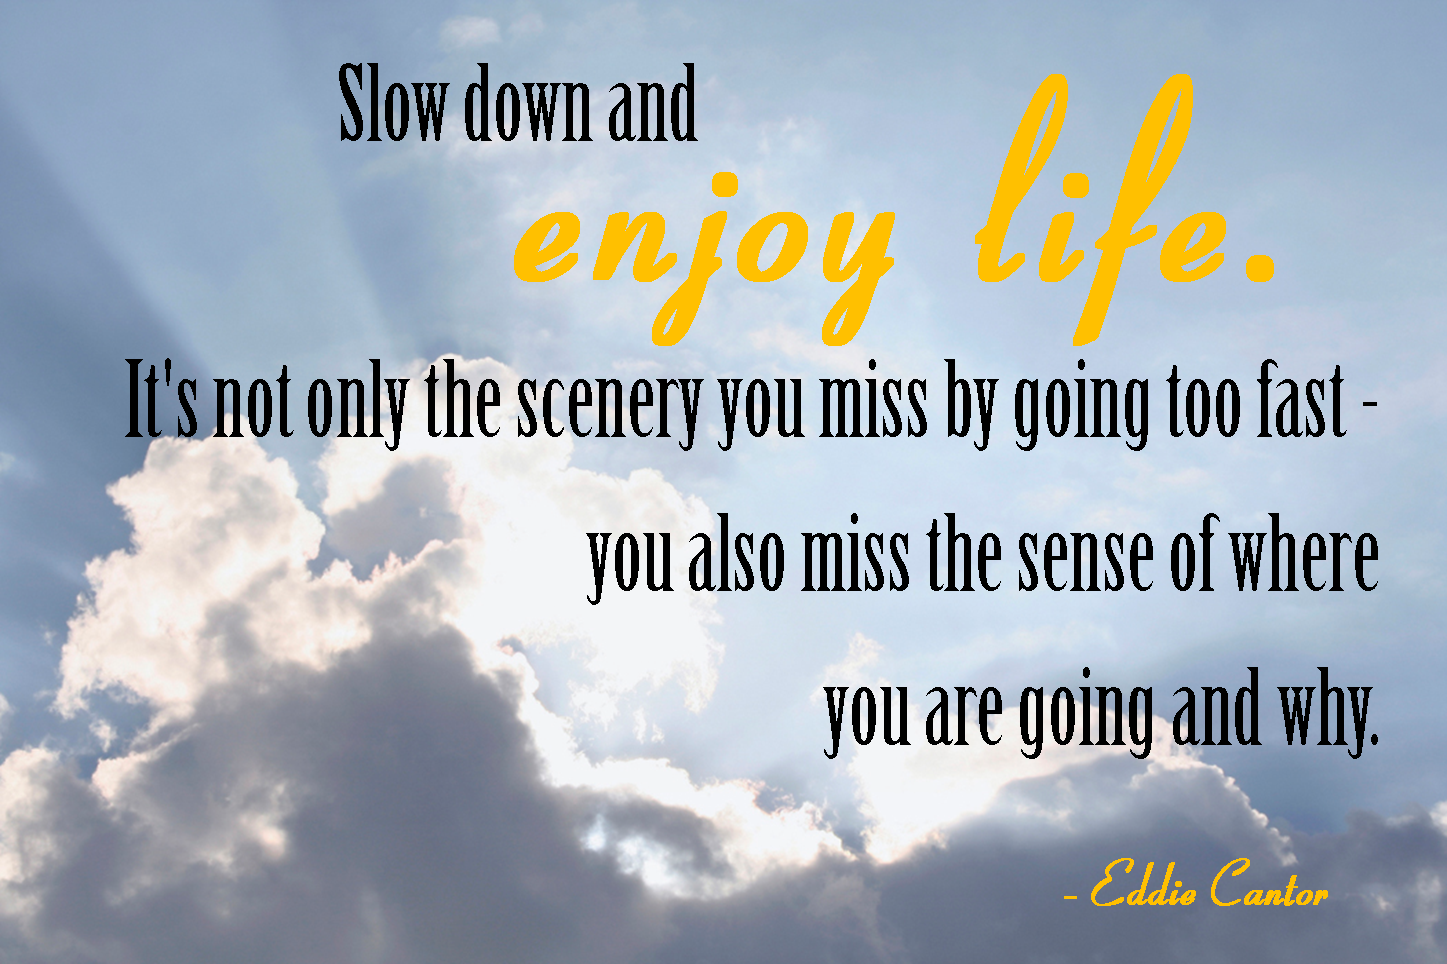 quotes about slowing down and enjoying life